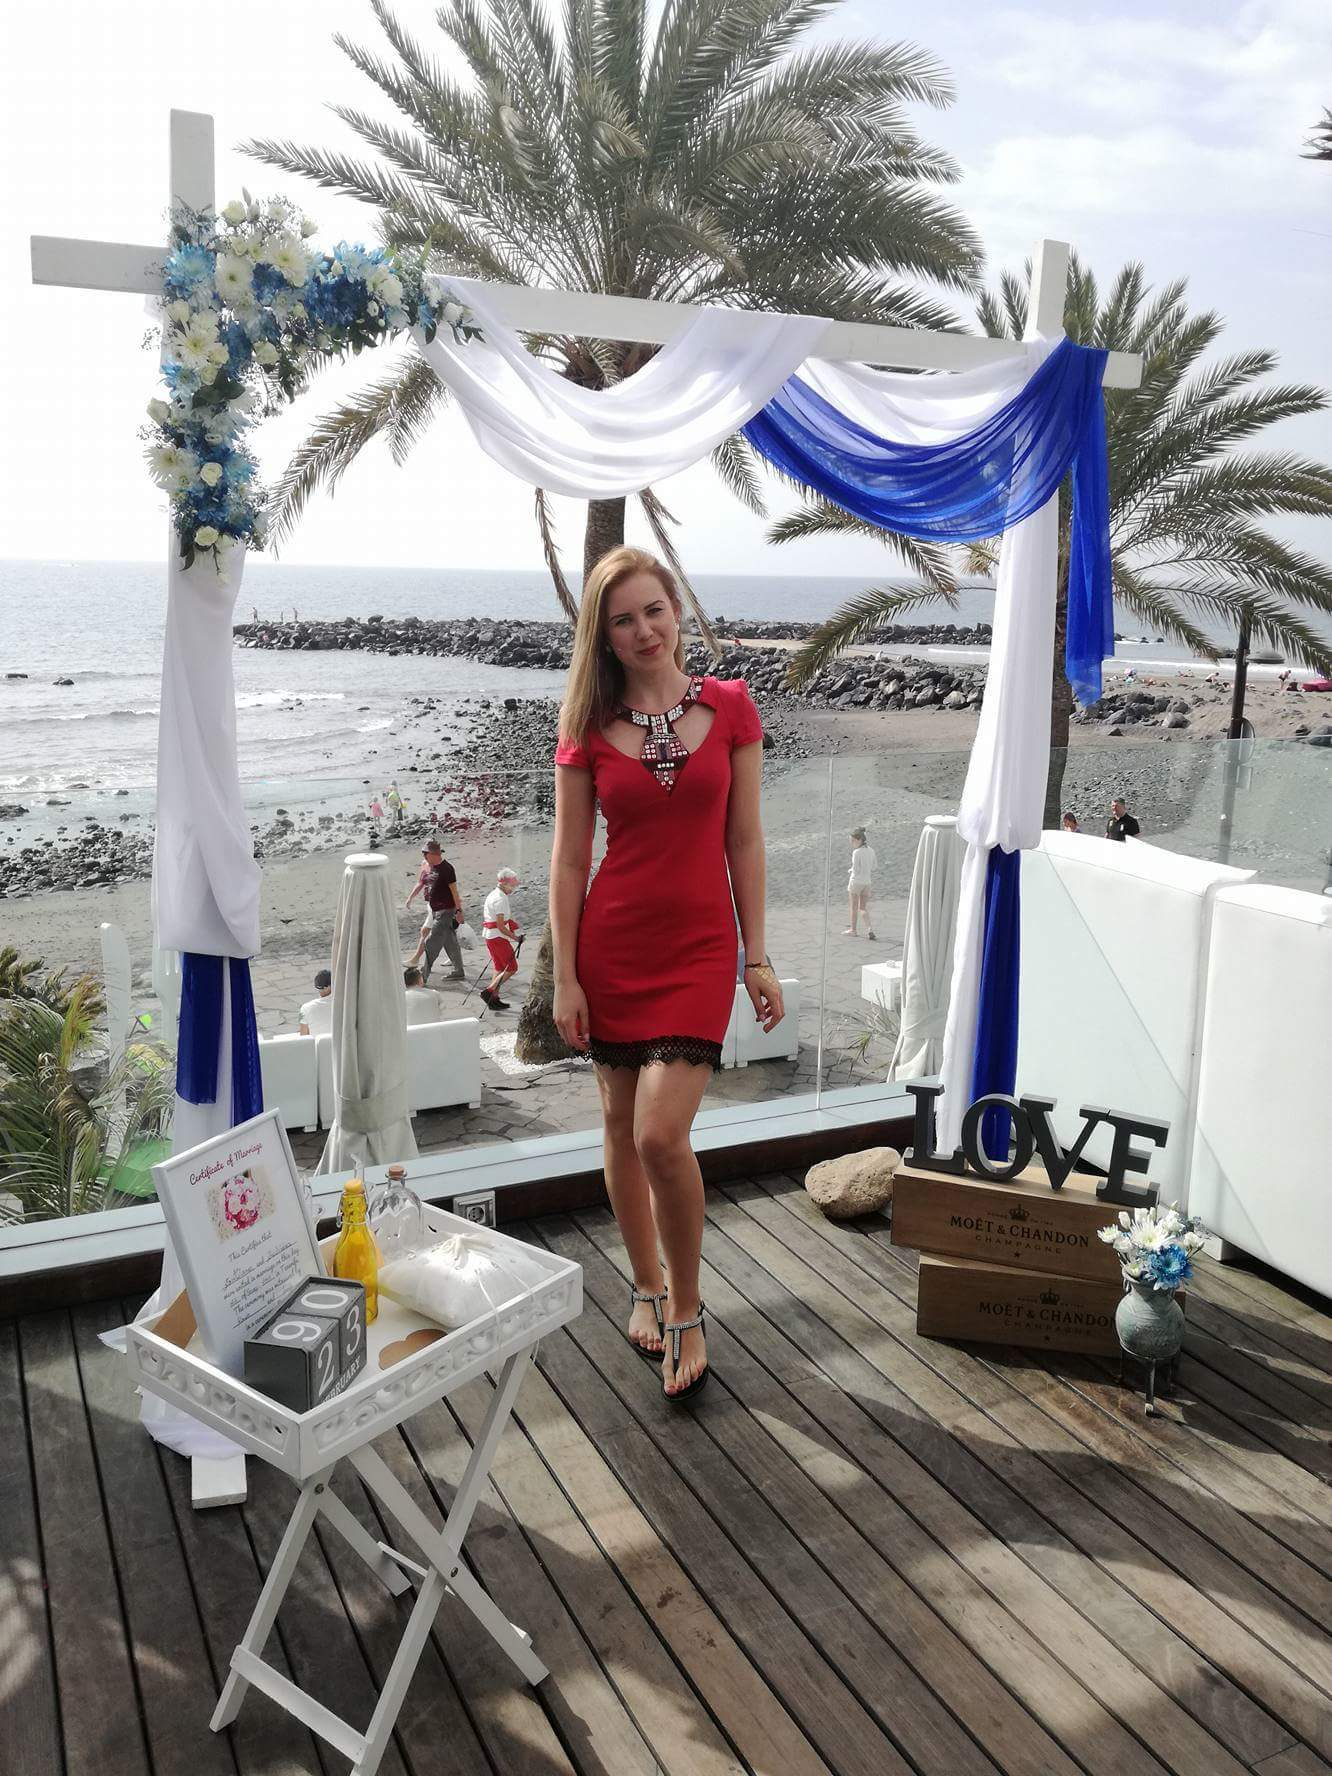 A girl with a red dress standing before the start of the wedding